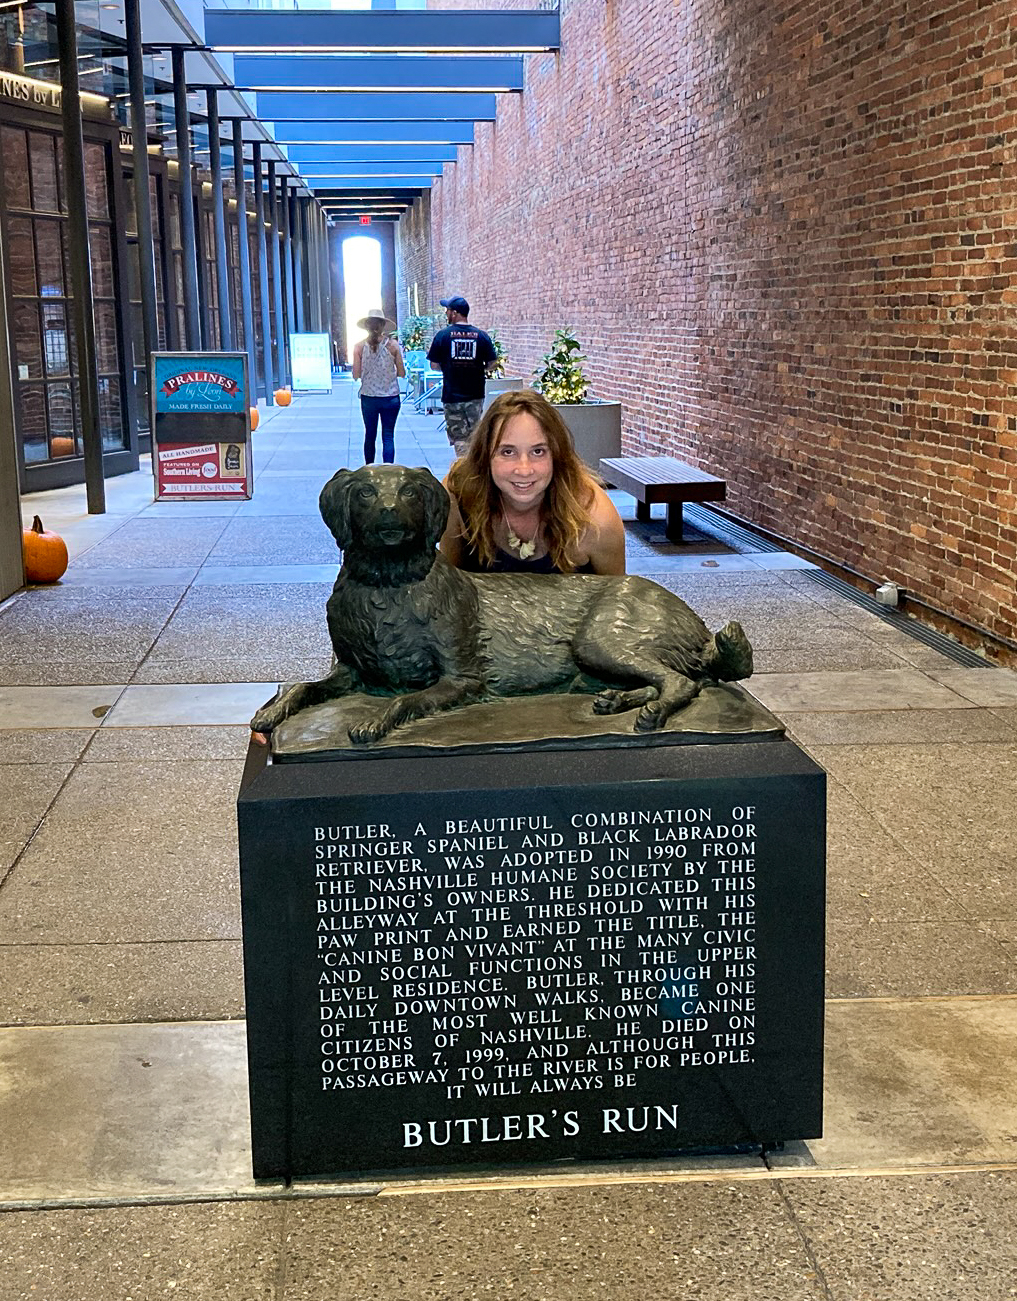 Finding Things to do during the Pandemic: Butler the Statue